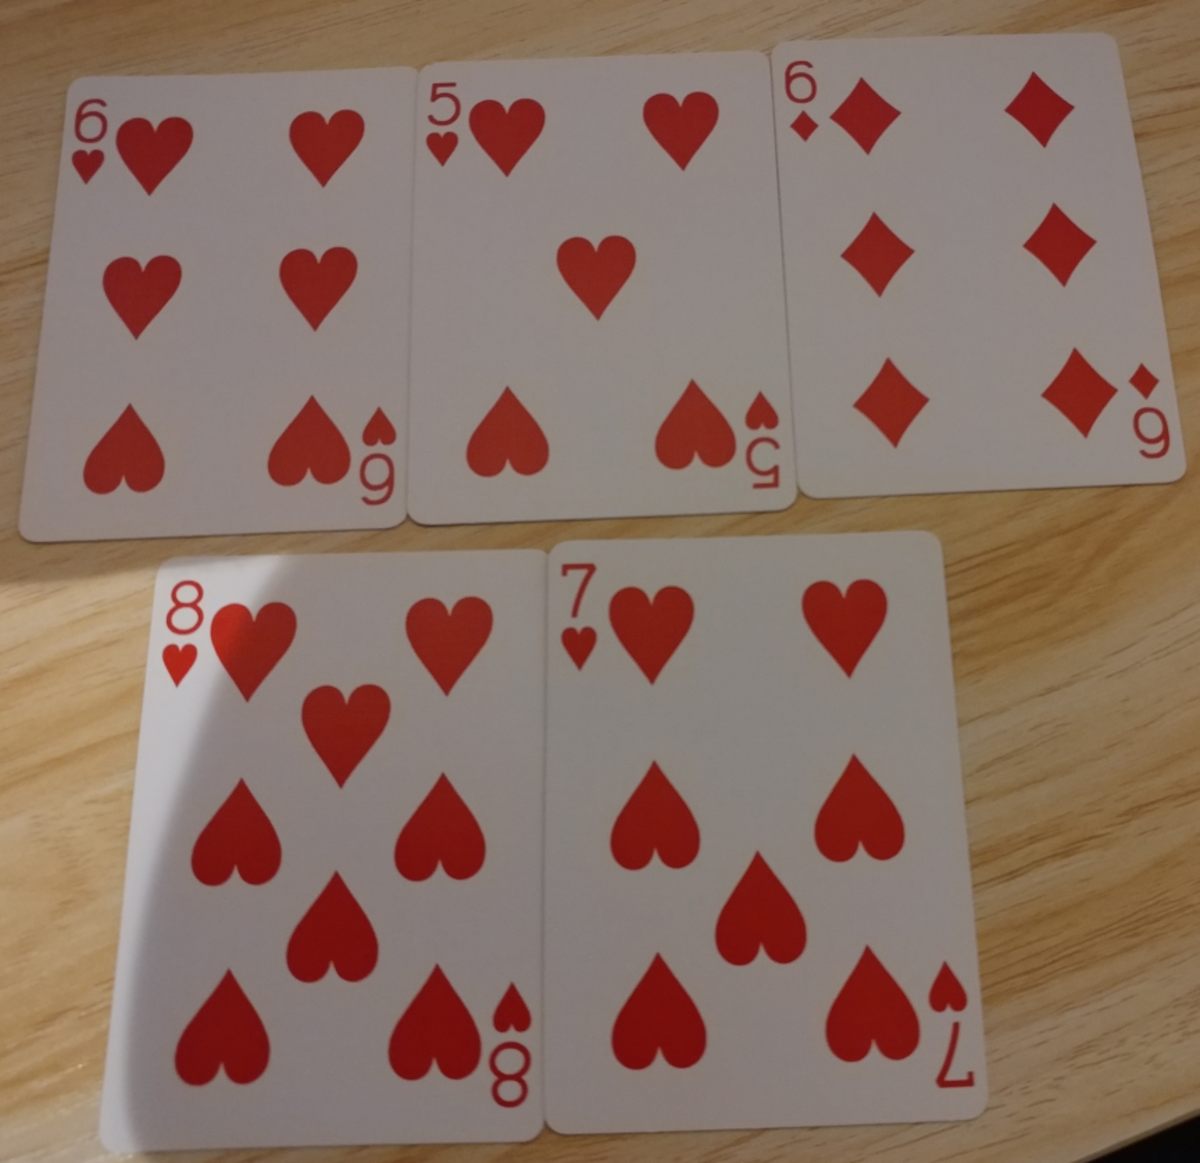 This is a straight flush draw.